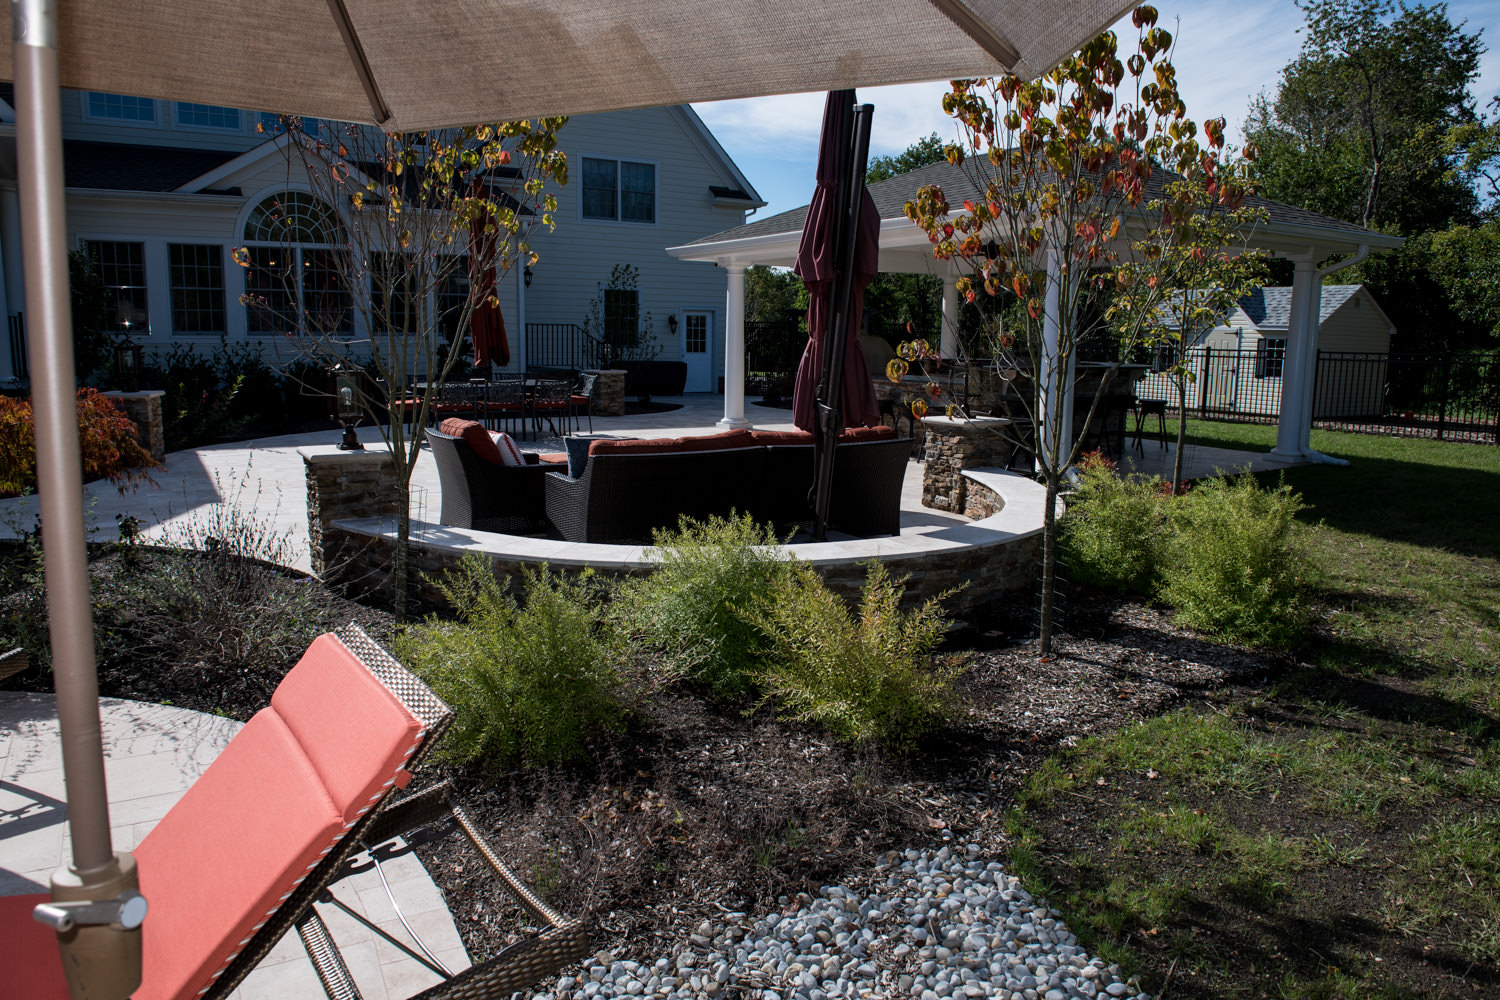 15-Custom-Pool-Design-Pennington-NJ-K-and-C-Land-Design.jpg